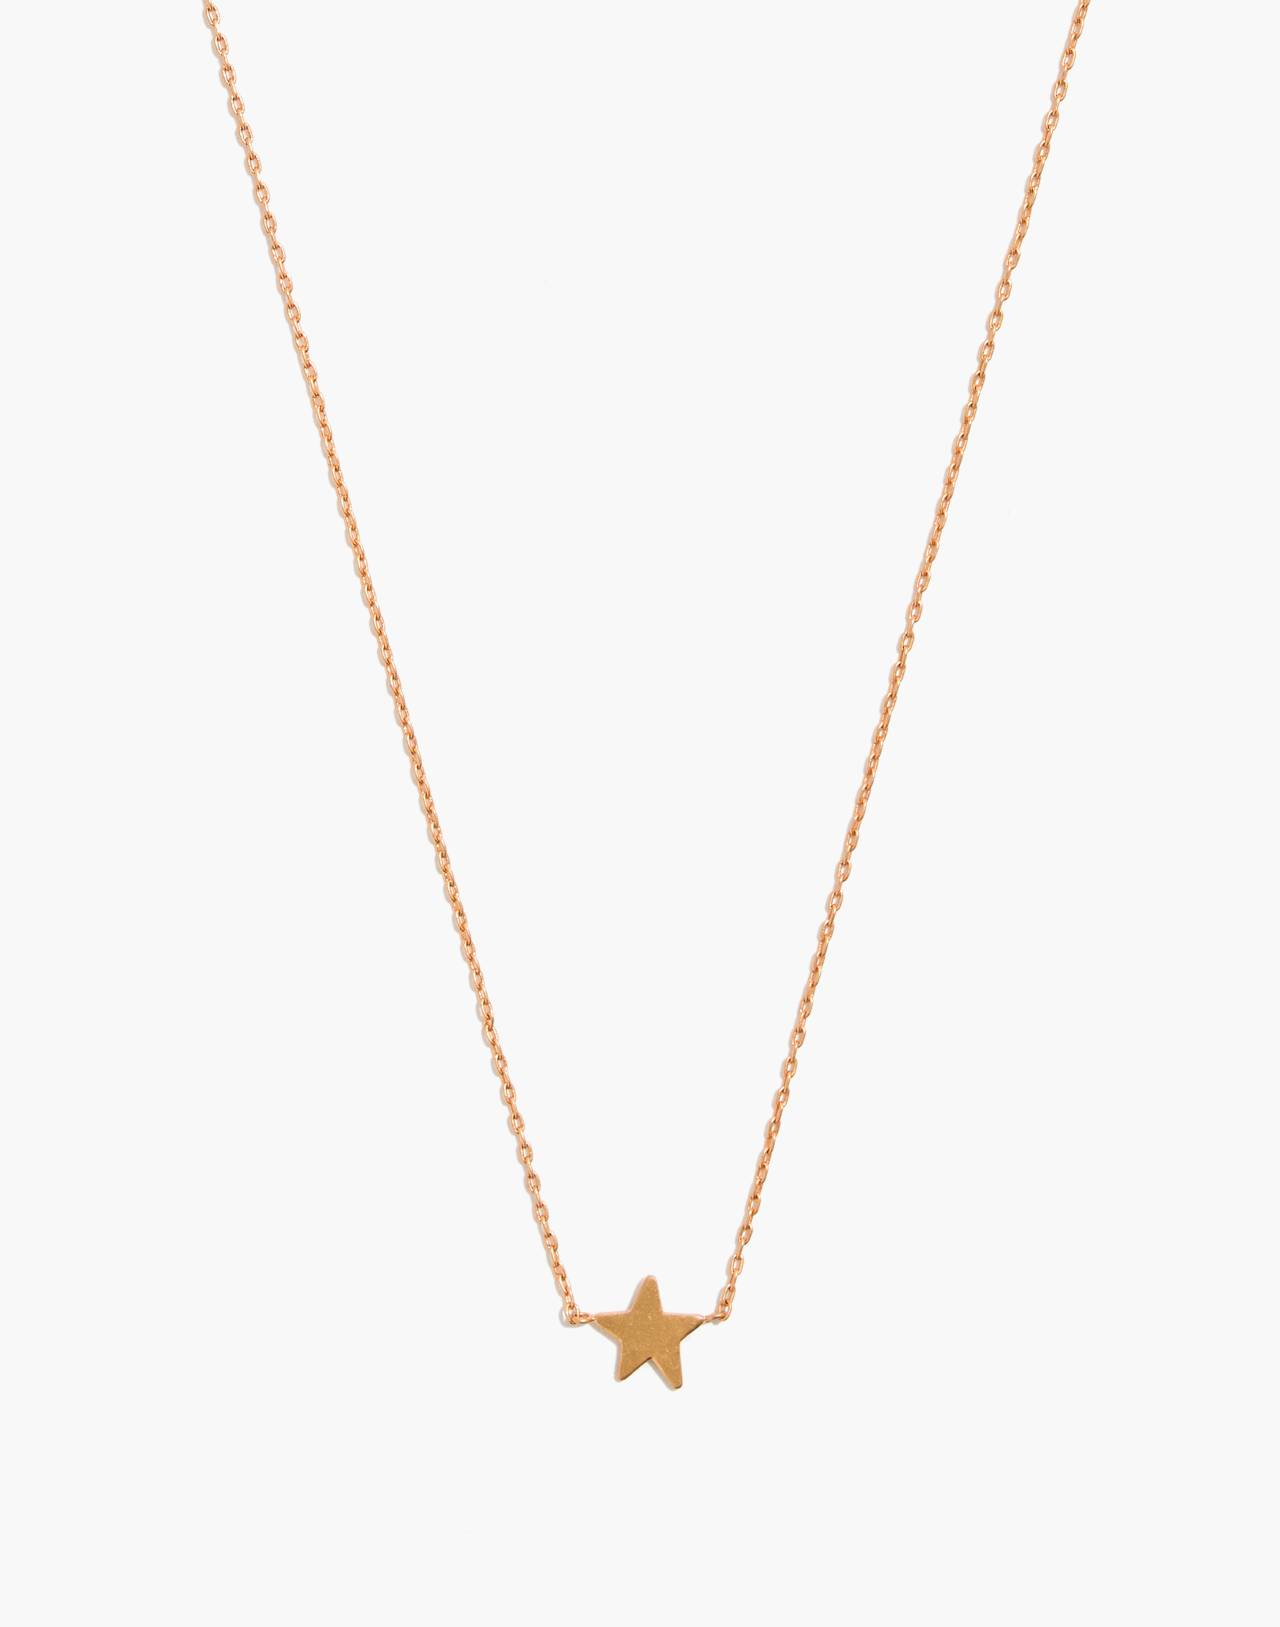 Mini Star Necklace in vintage gold image 1